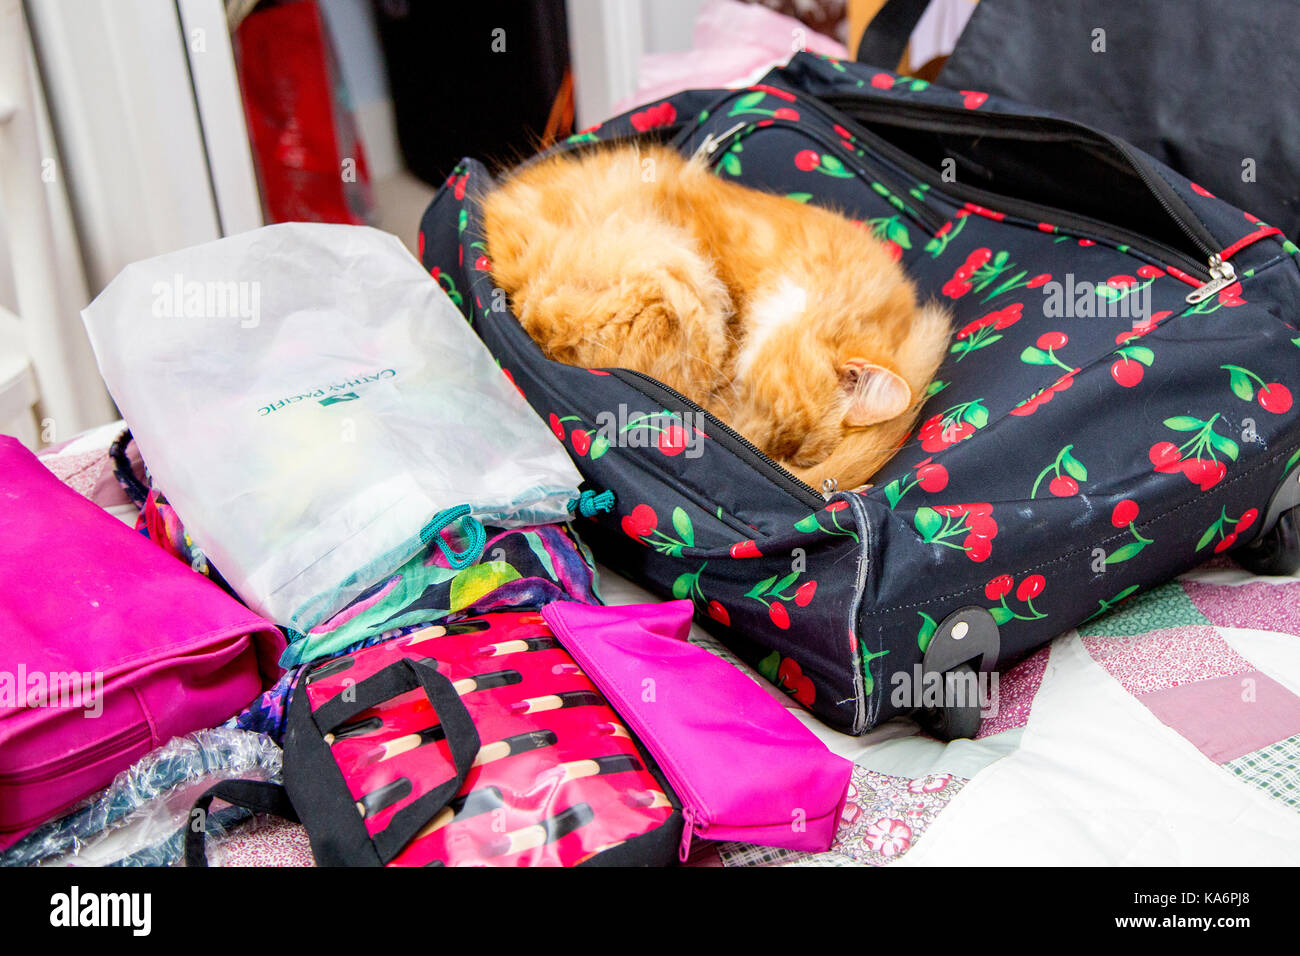 A ginger cat curled up asleep in a suitcase which was just about to be packed. - Stock Image